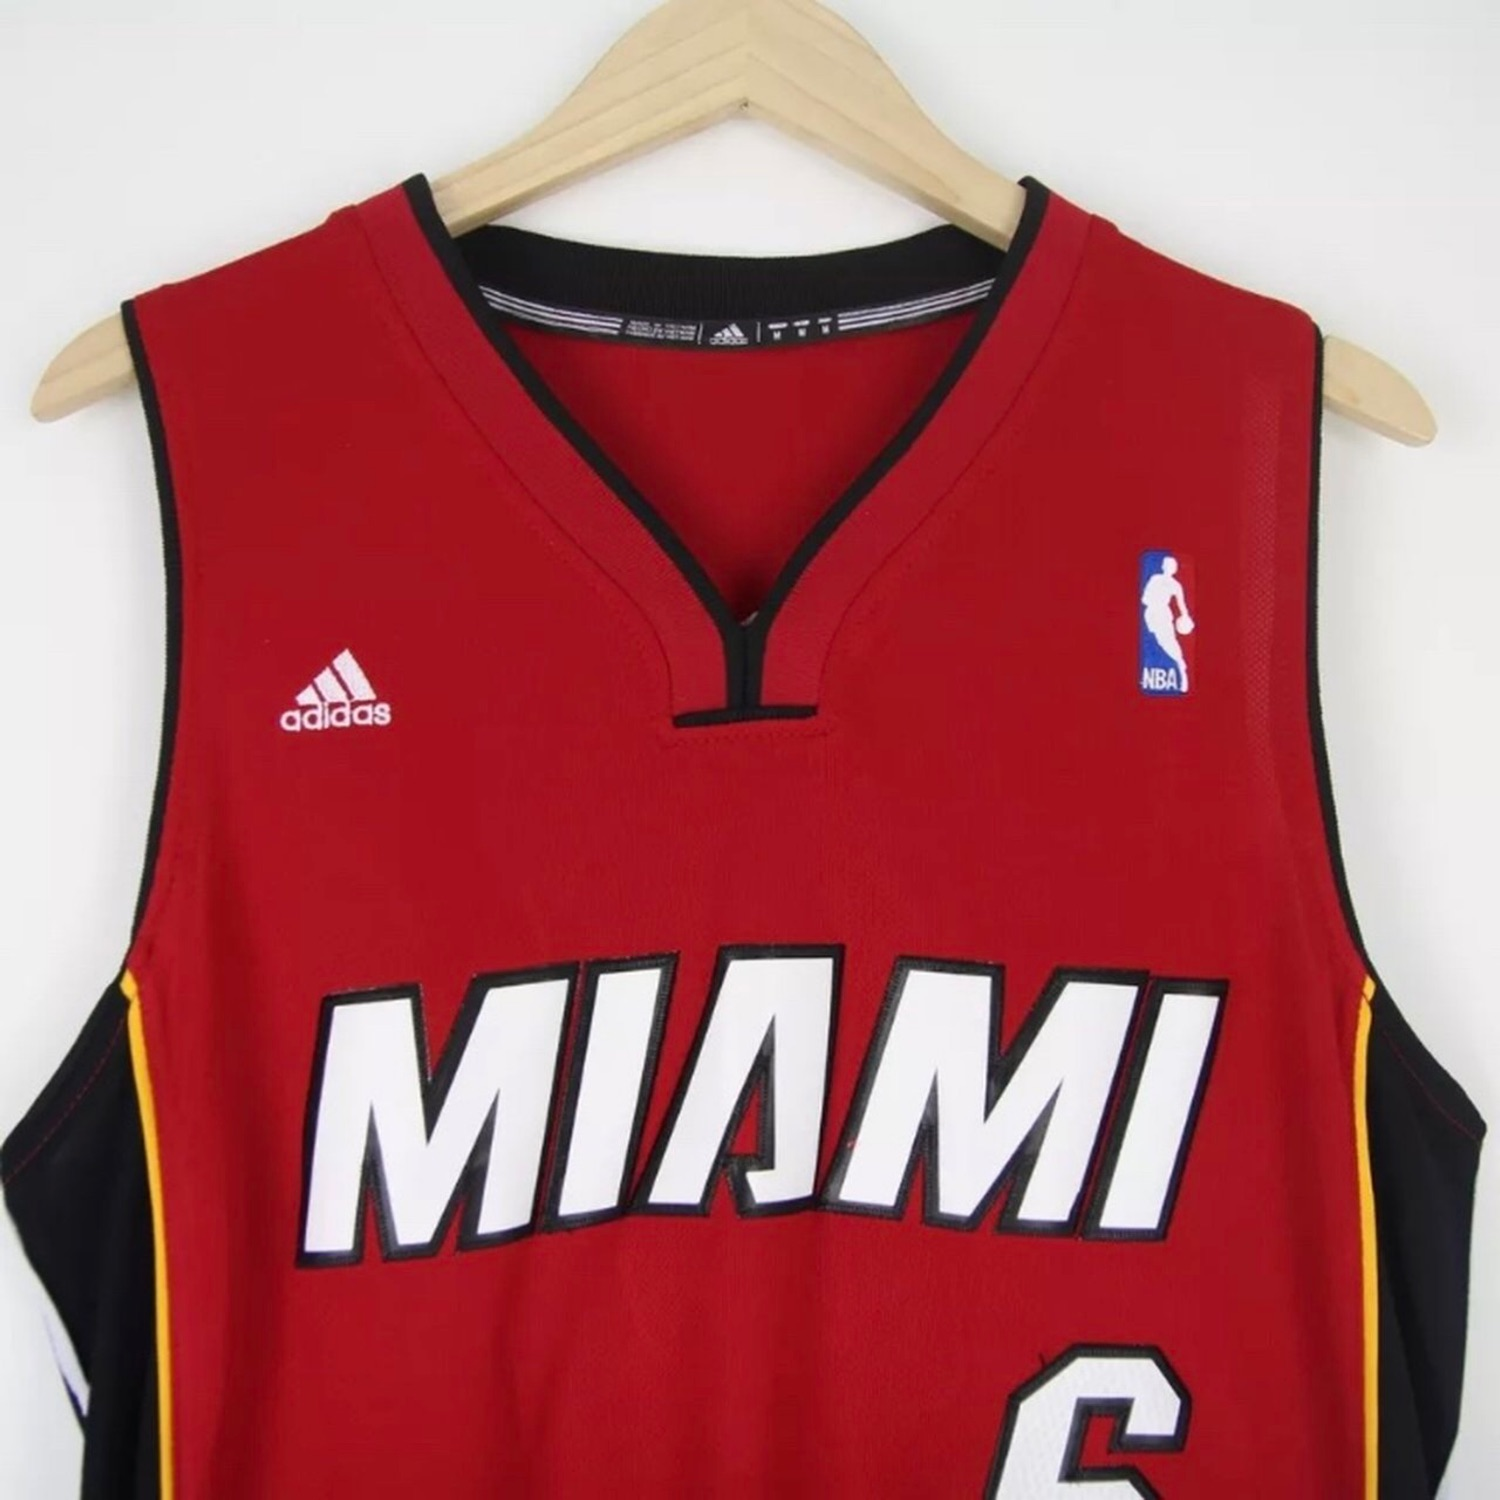 competitive price 5f48d 2d9ca Vintage Adidas Miami Heat Lebron James Nba Jersey